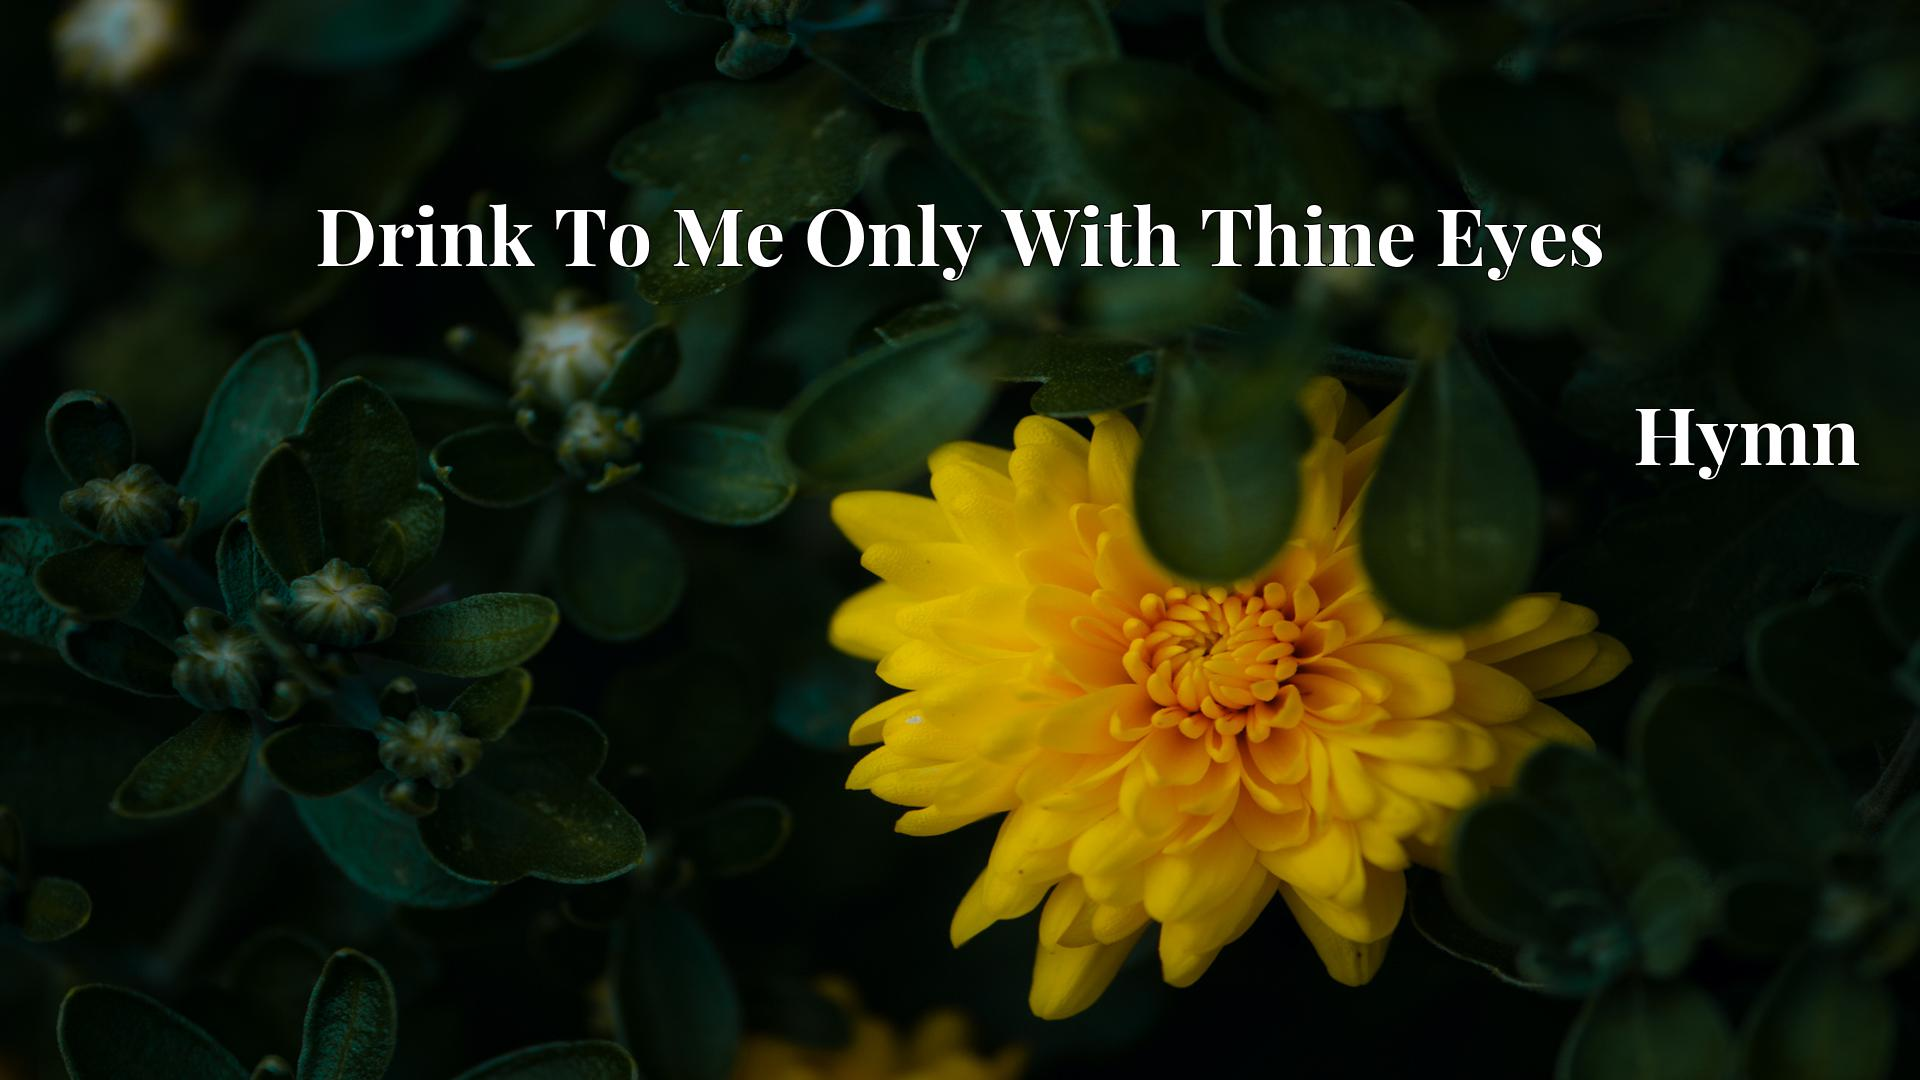 Drink To Me Only With Thine Eyes - Hymn